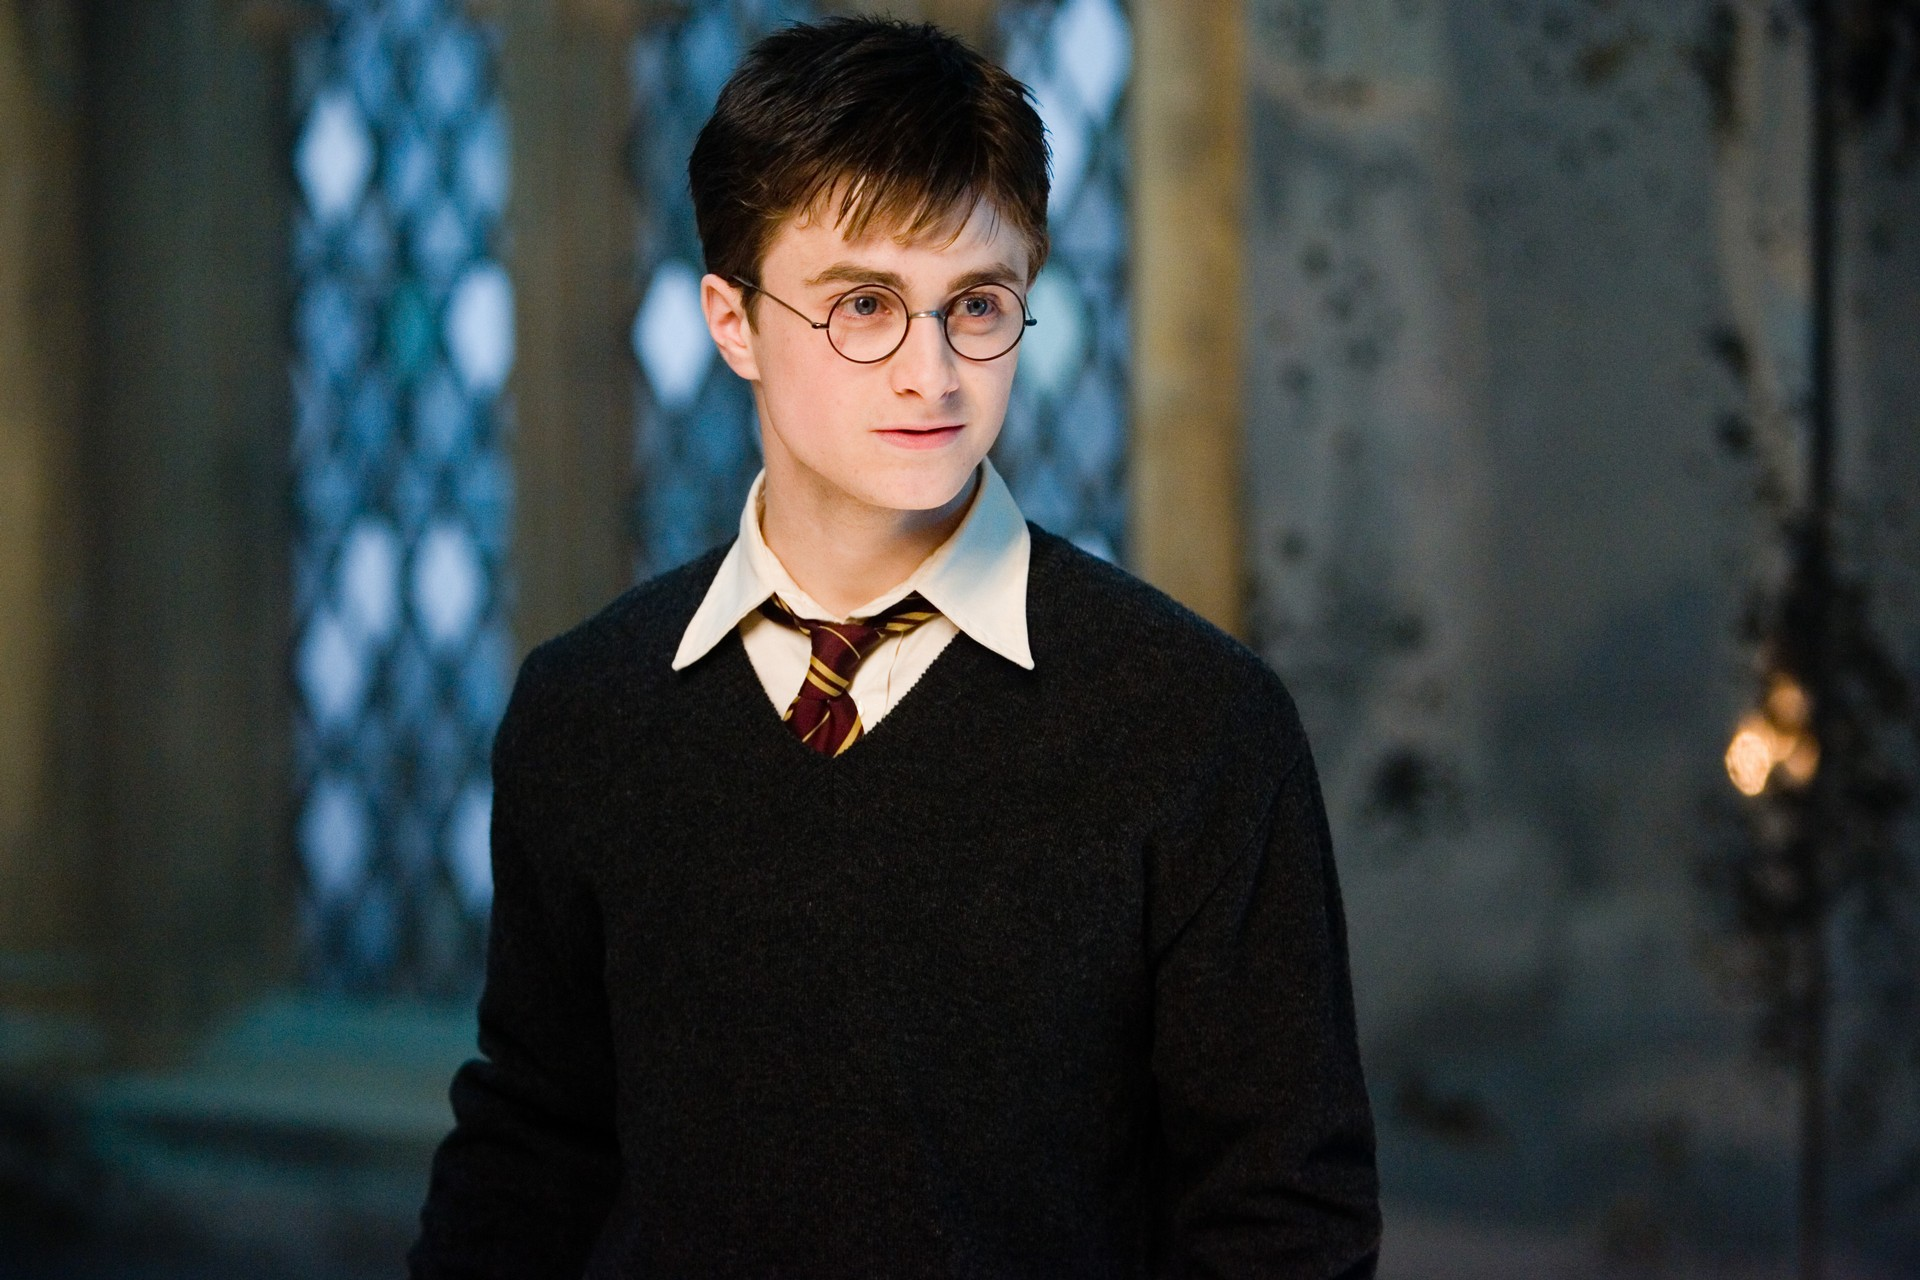 Harry Potter Images  Harry Potter Photo 33972874  Fanpop